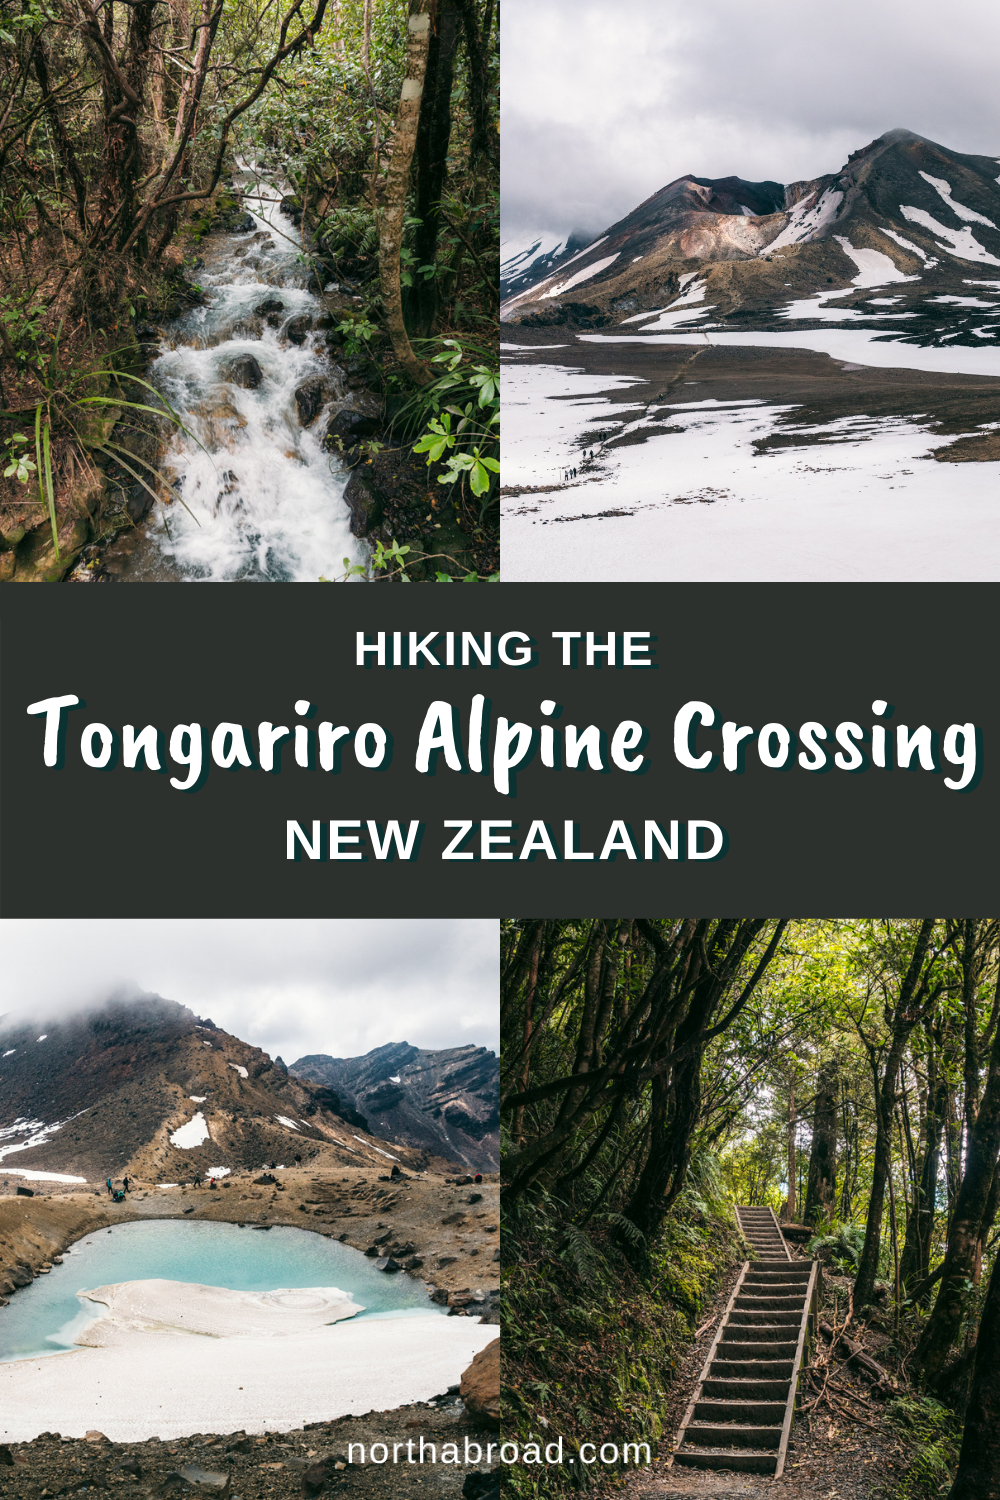 Our Experience Hiking the Tongariro Alpine Crossing in New Zealand